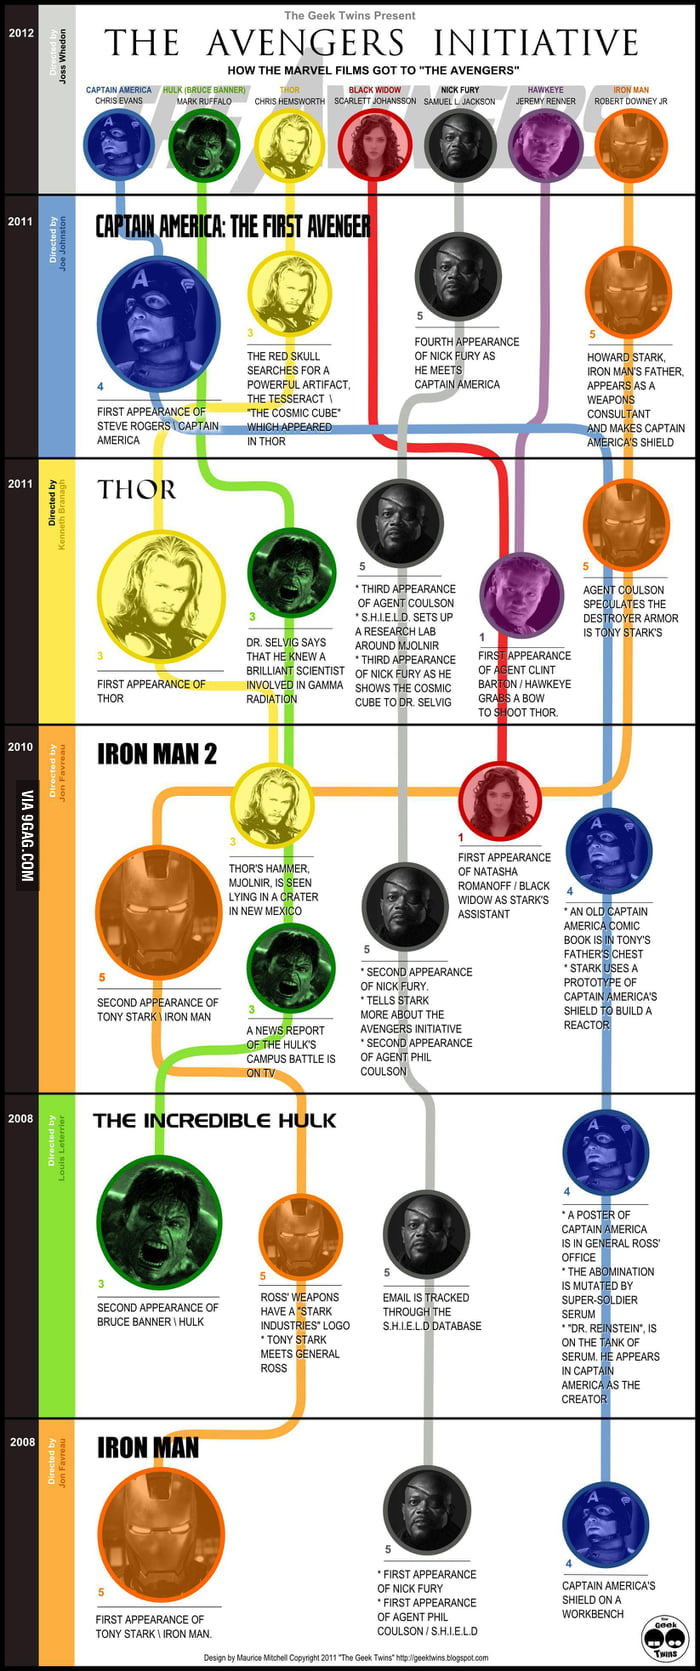 A brief history of The Avengers